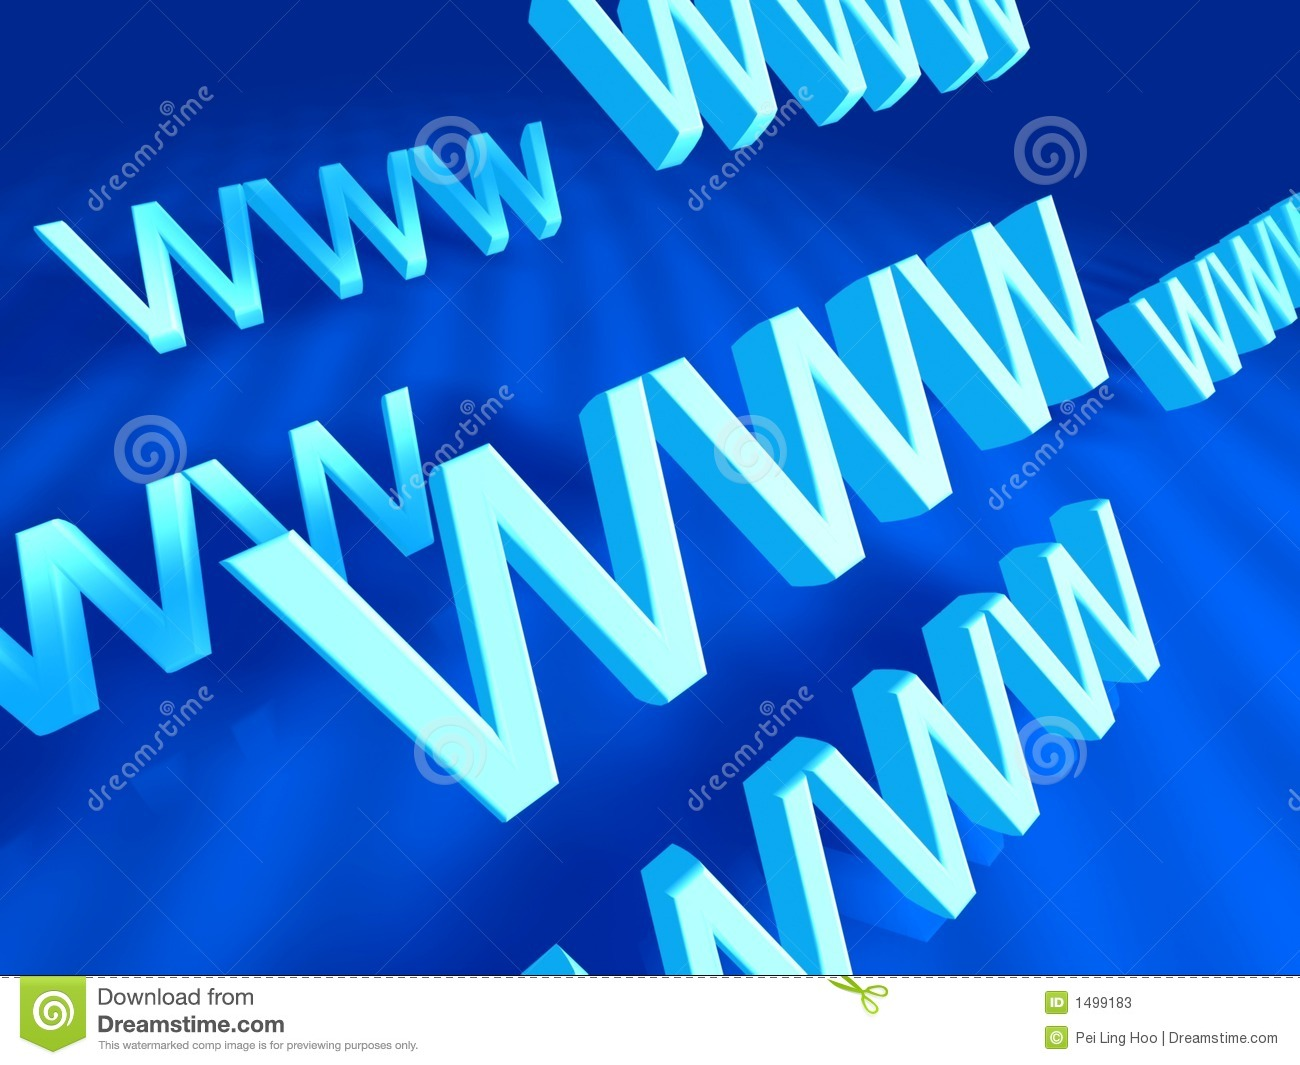 Símbolo del World Wide Web